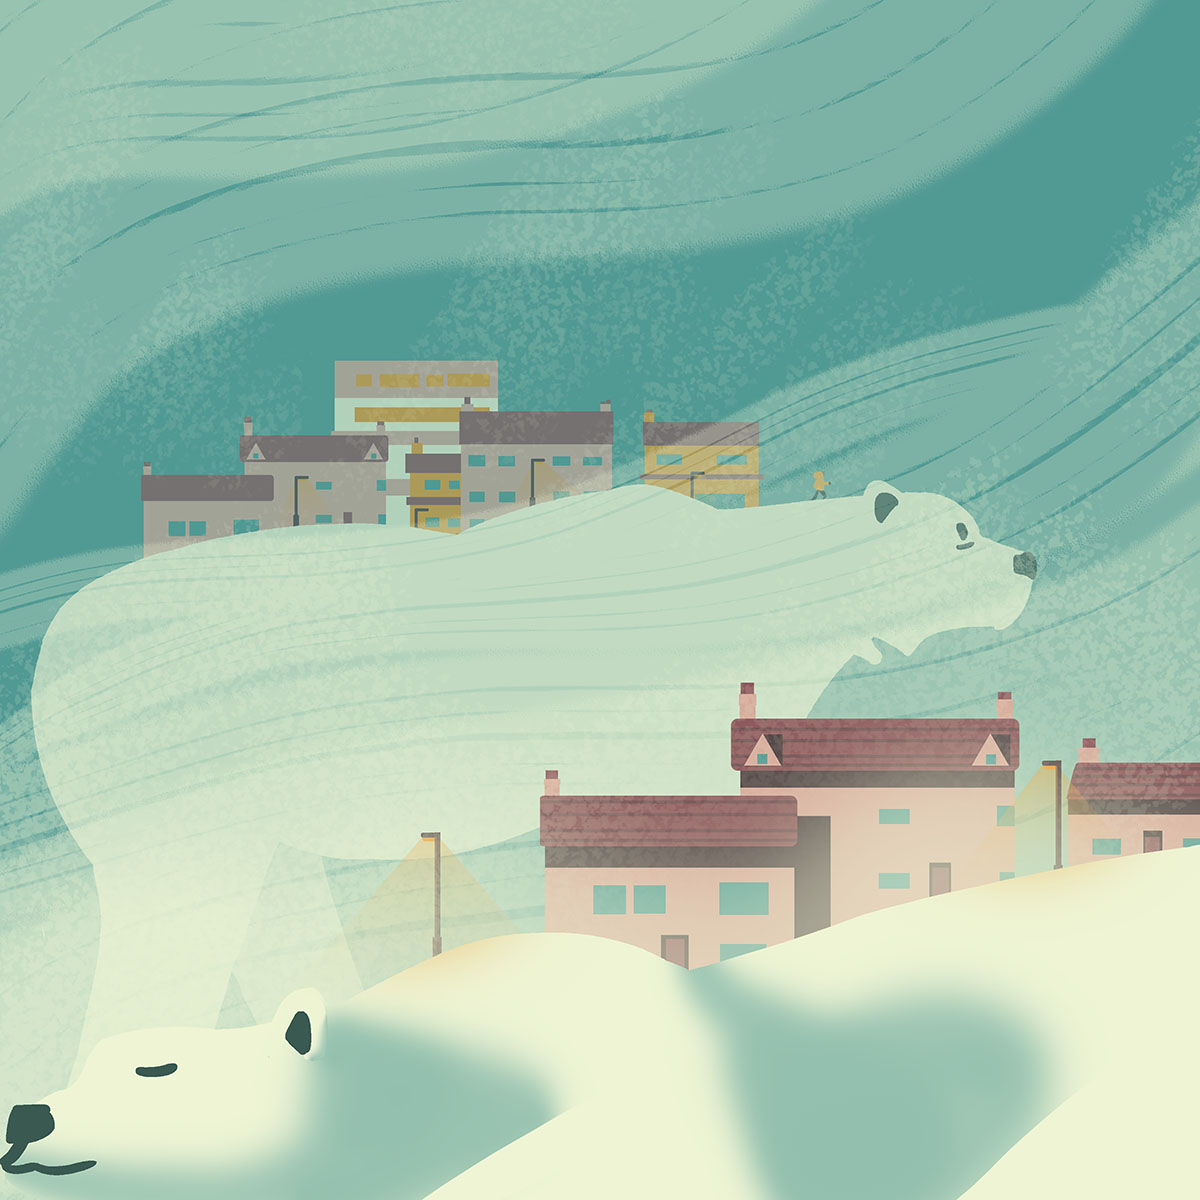 Illustration of polar bears amidst a snowstorm, carrying towns on their backs.